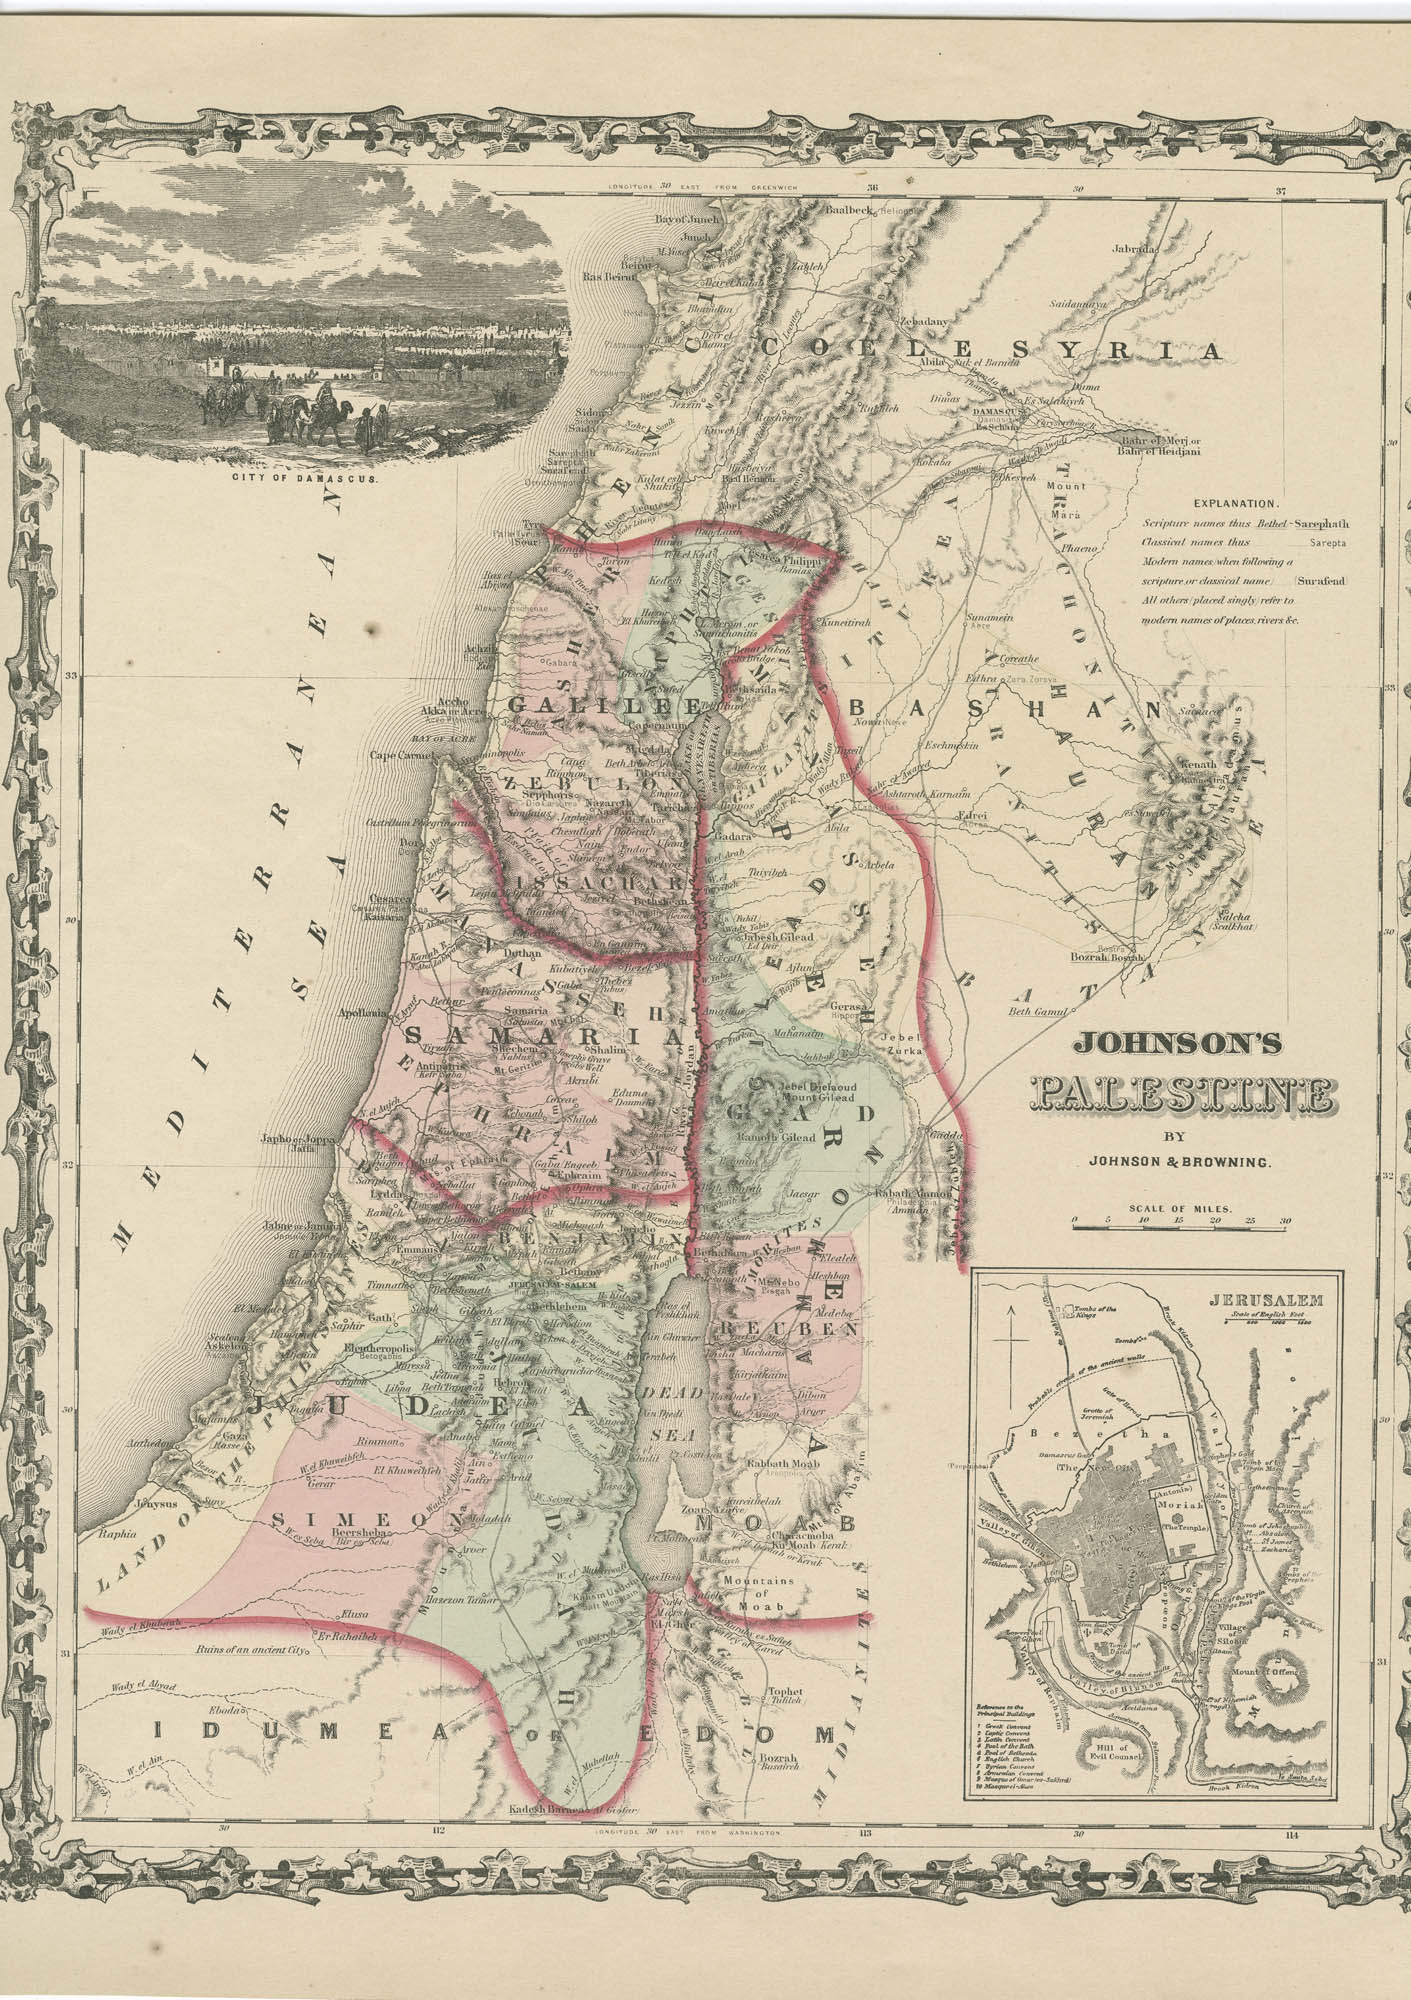 Johnson's Palestine